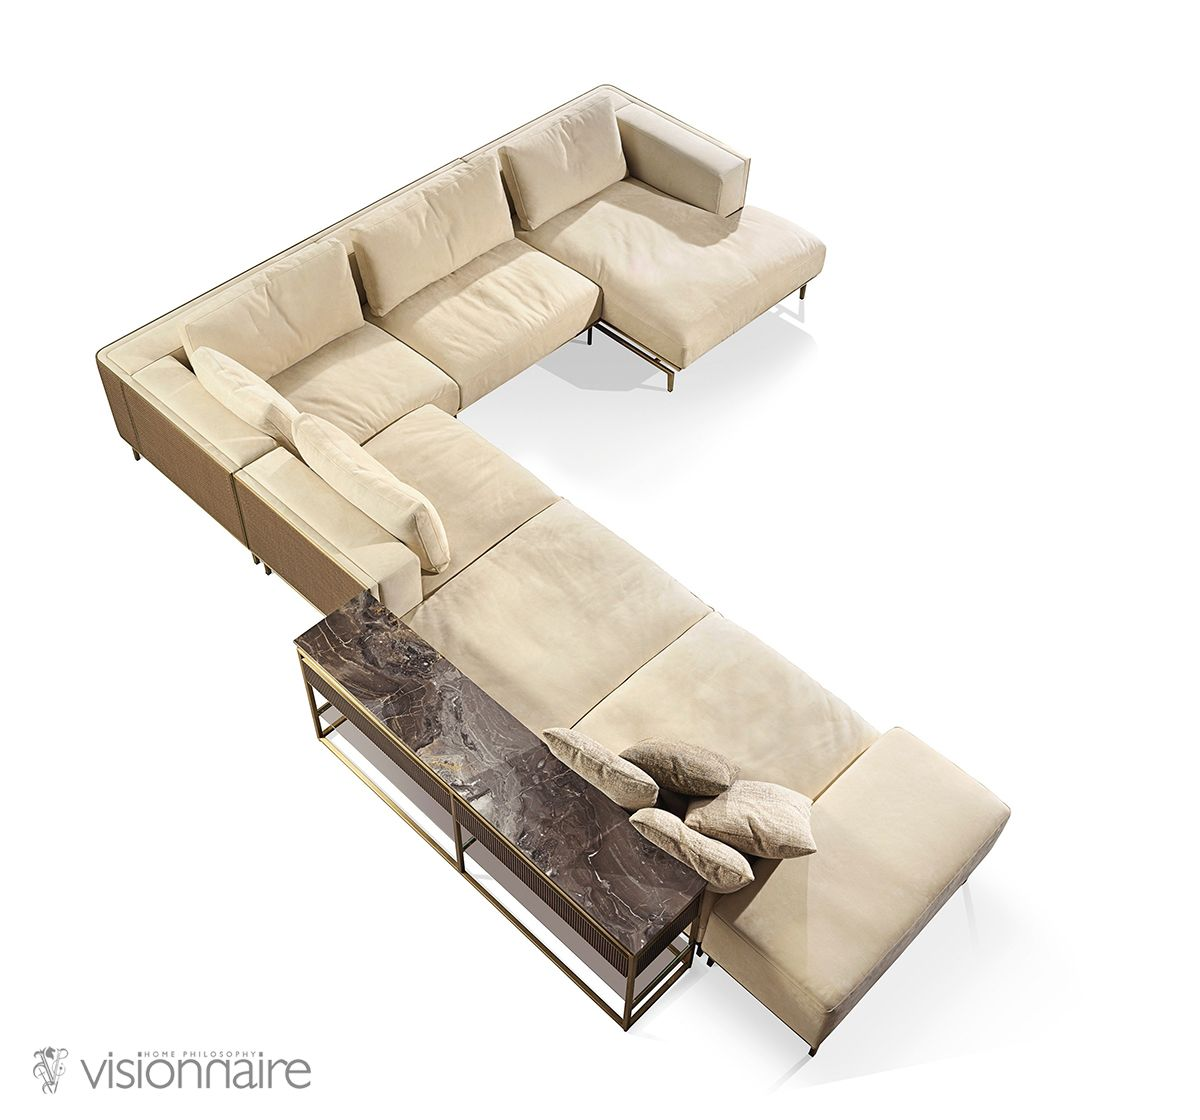 Luxury Italian Upholstered Backstage Sectional And Sofa Visionnaire High End Italian Design Luxury Furniture Luxury Furniture Sofa Italian Furniture Design